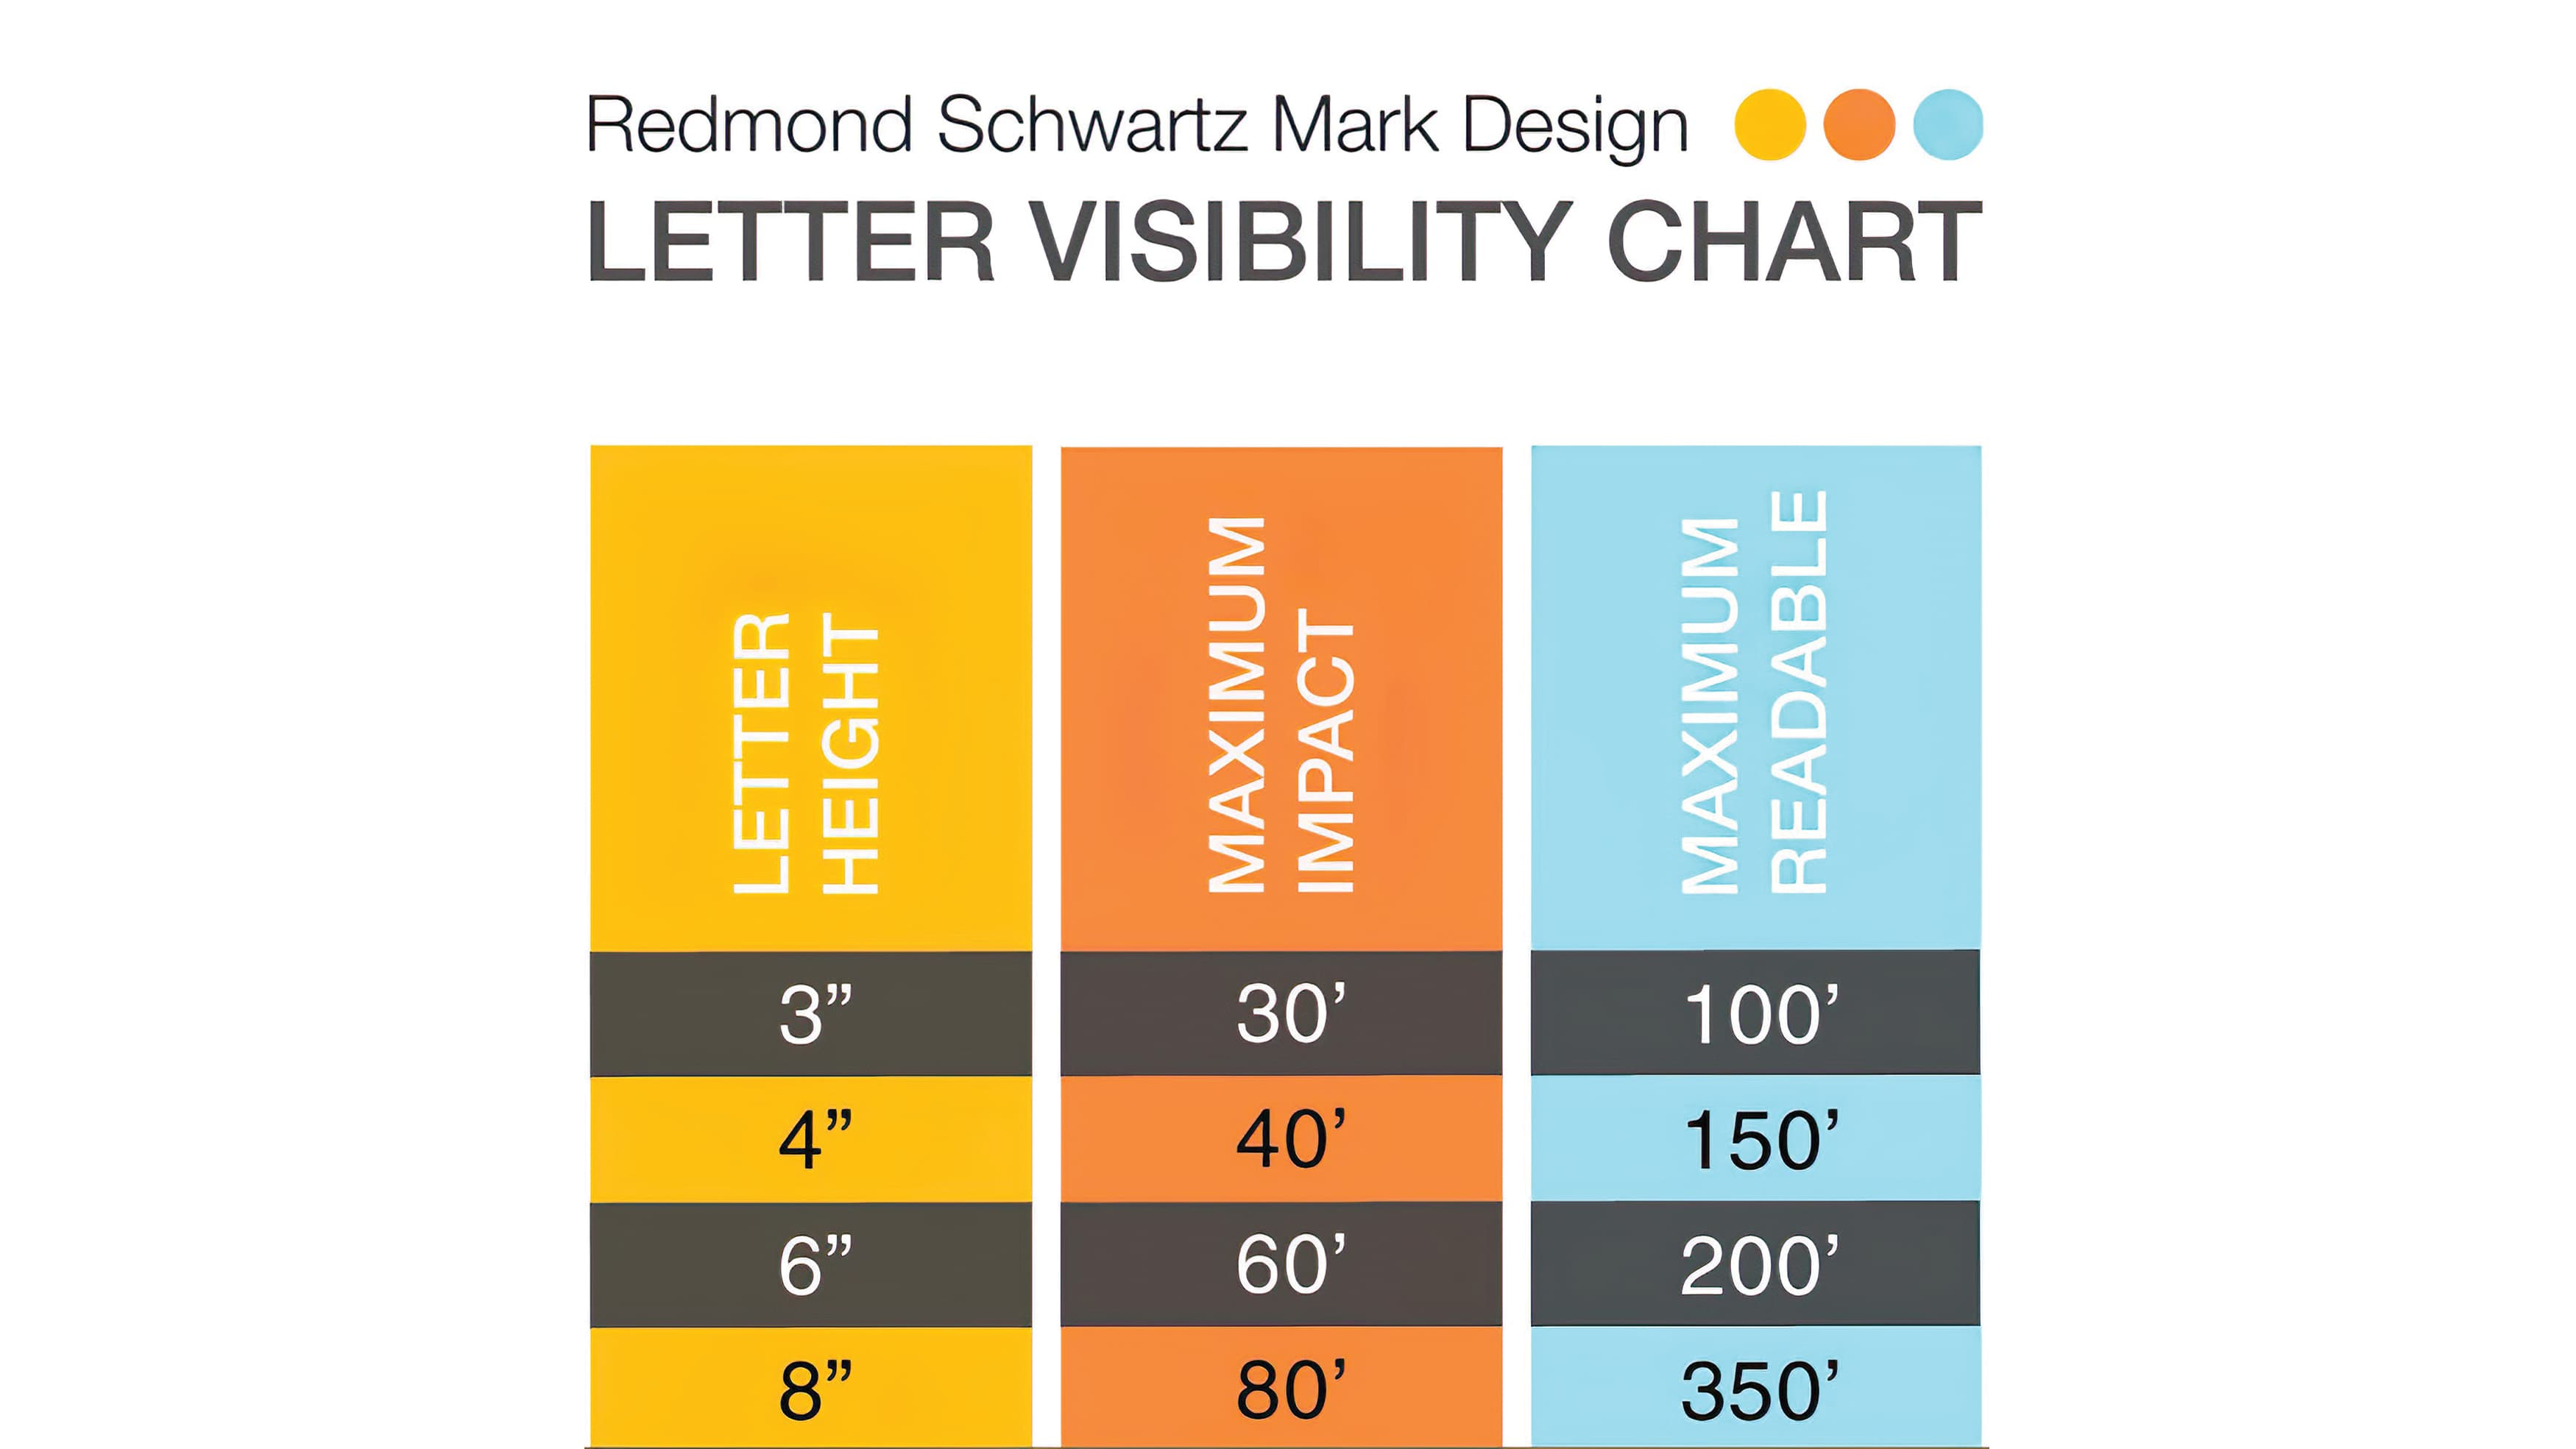 RSM Design's Letter Visibility Chart indicating proper letter height, maximum impact, and maximum readability.